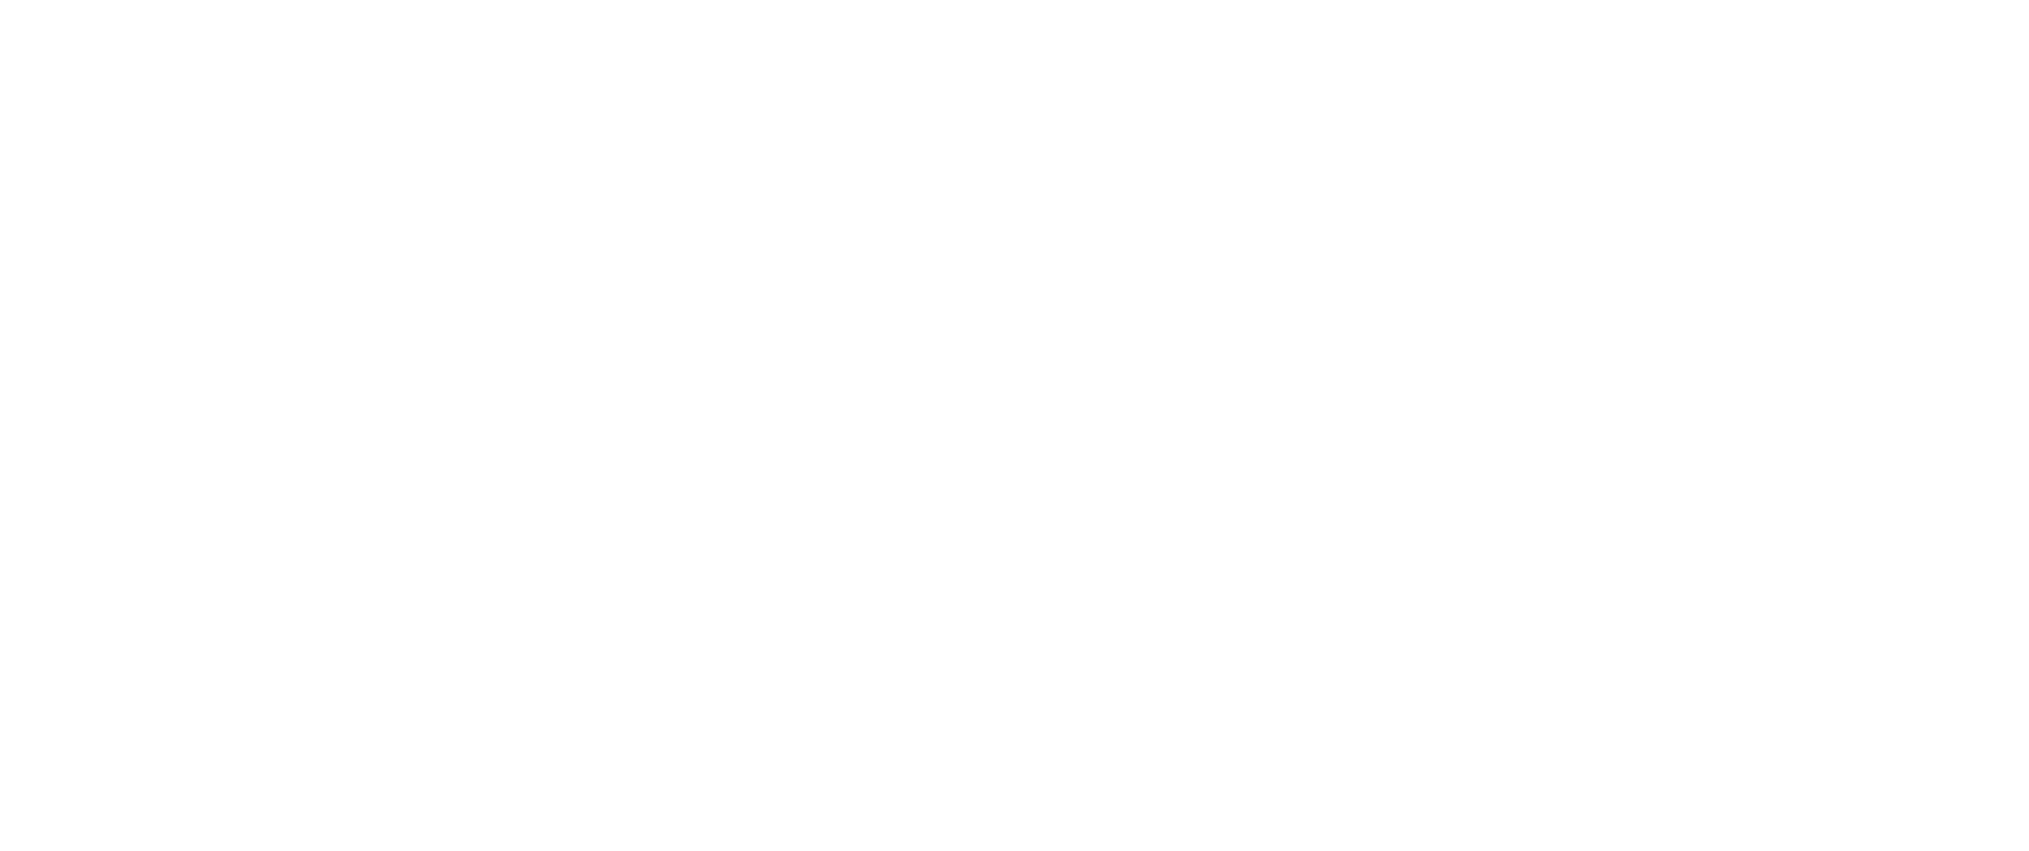 Sustainable Development Solutions Network logo